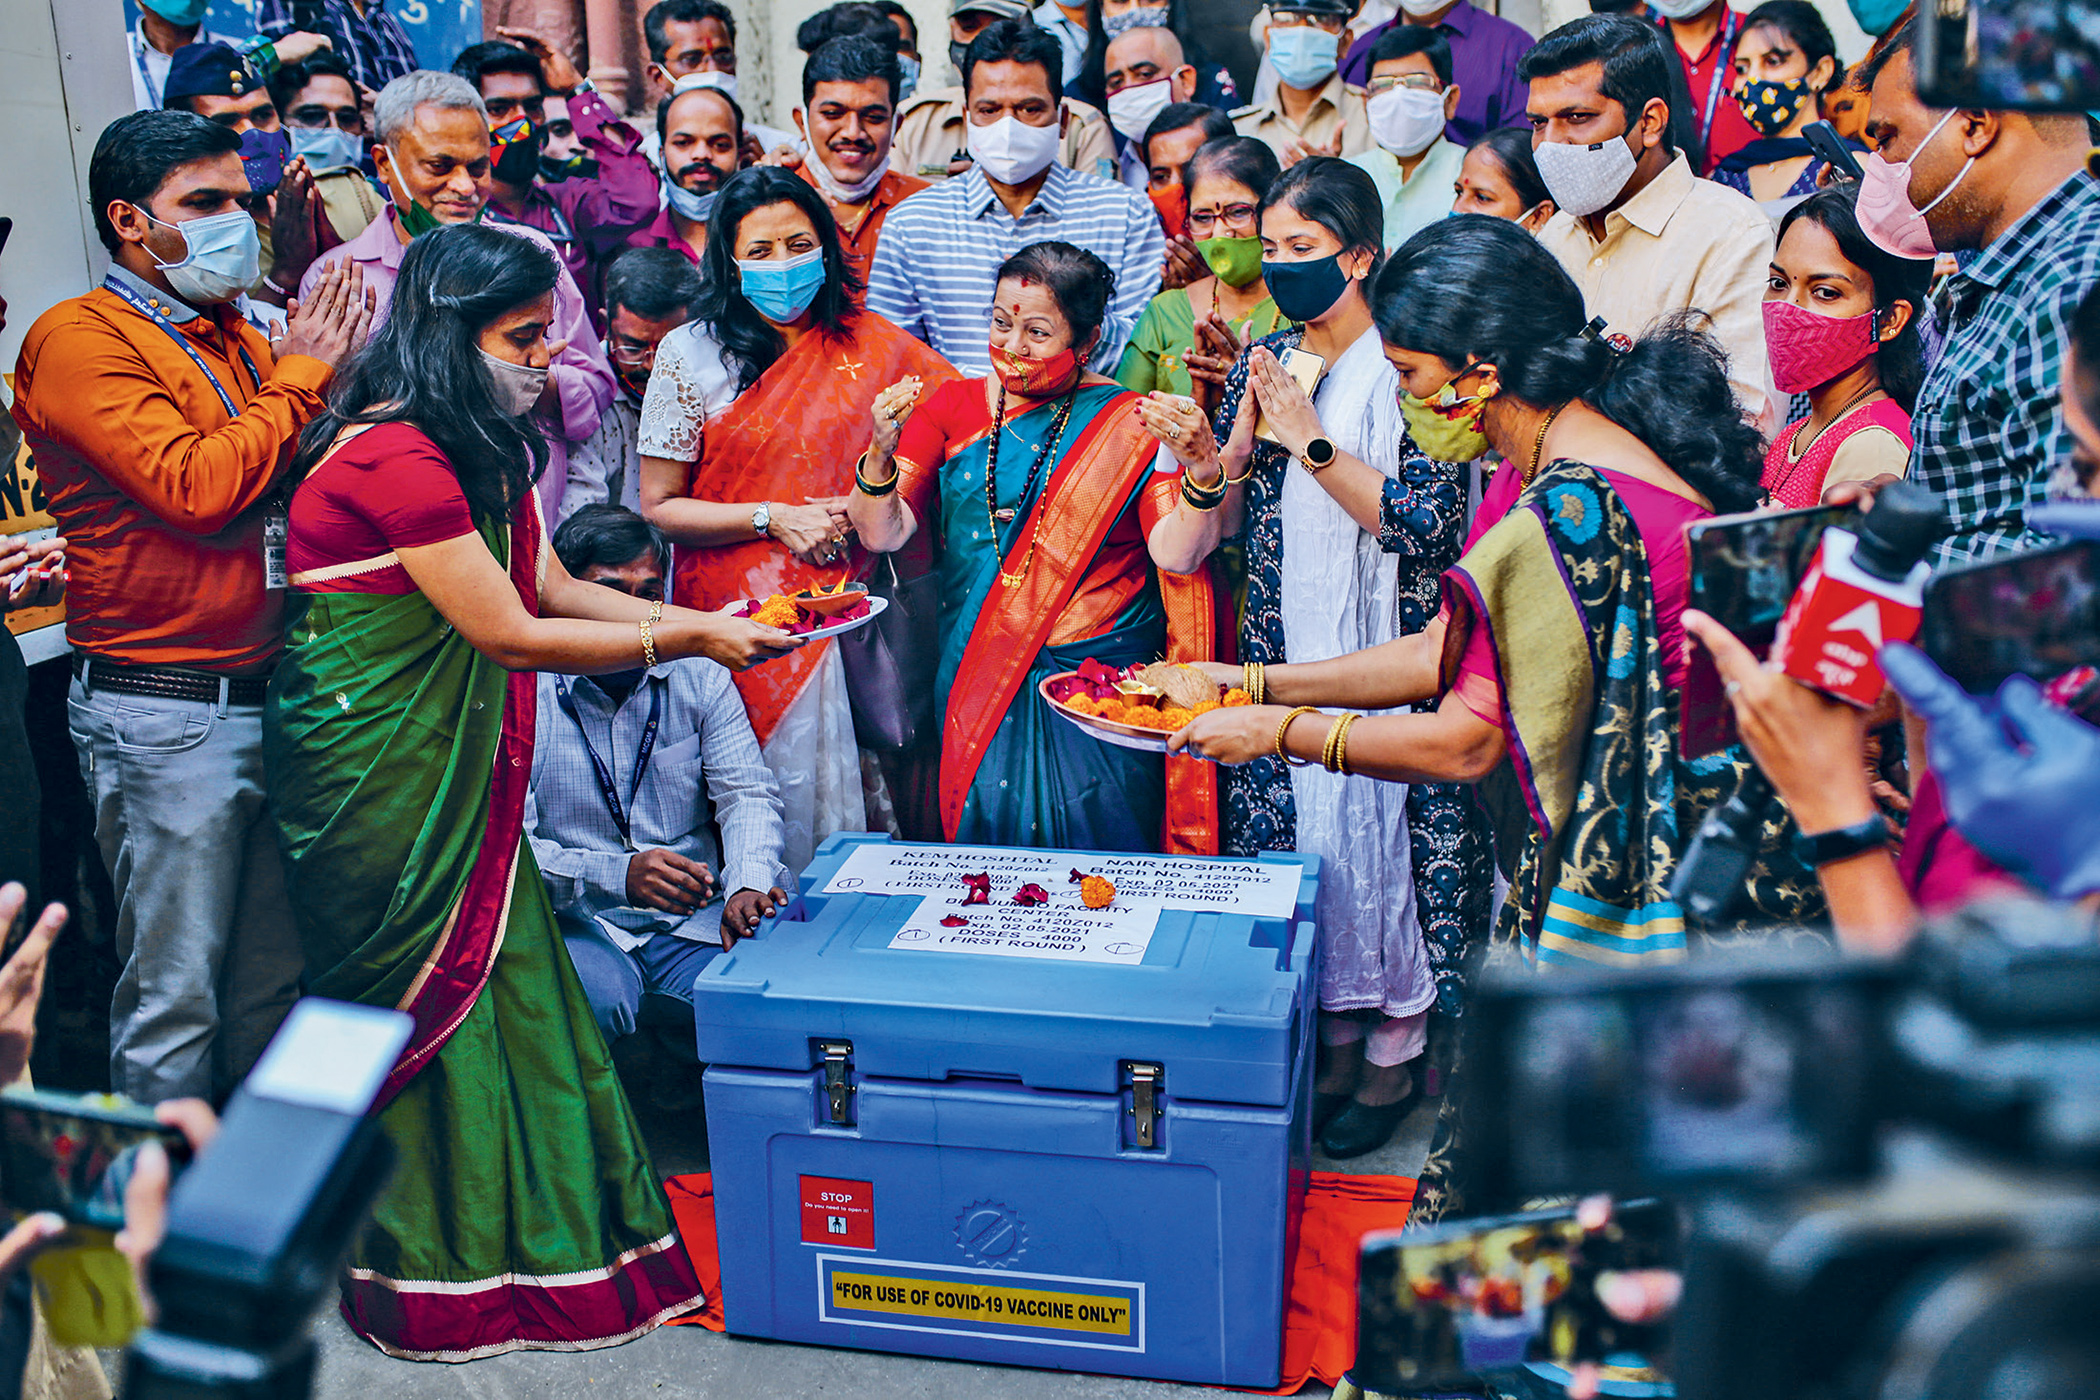 Government officials pray over a storage box containing Covid-19 vaccines before they leave for various vaccination centres in Mumbai, India, in January this year. India is one of the countries that is calling for patents on Covid-19 vaccines to be waived during the pandemic. Photo: Dhiraj Singh/Bloomberg/Getty